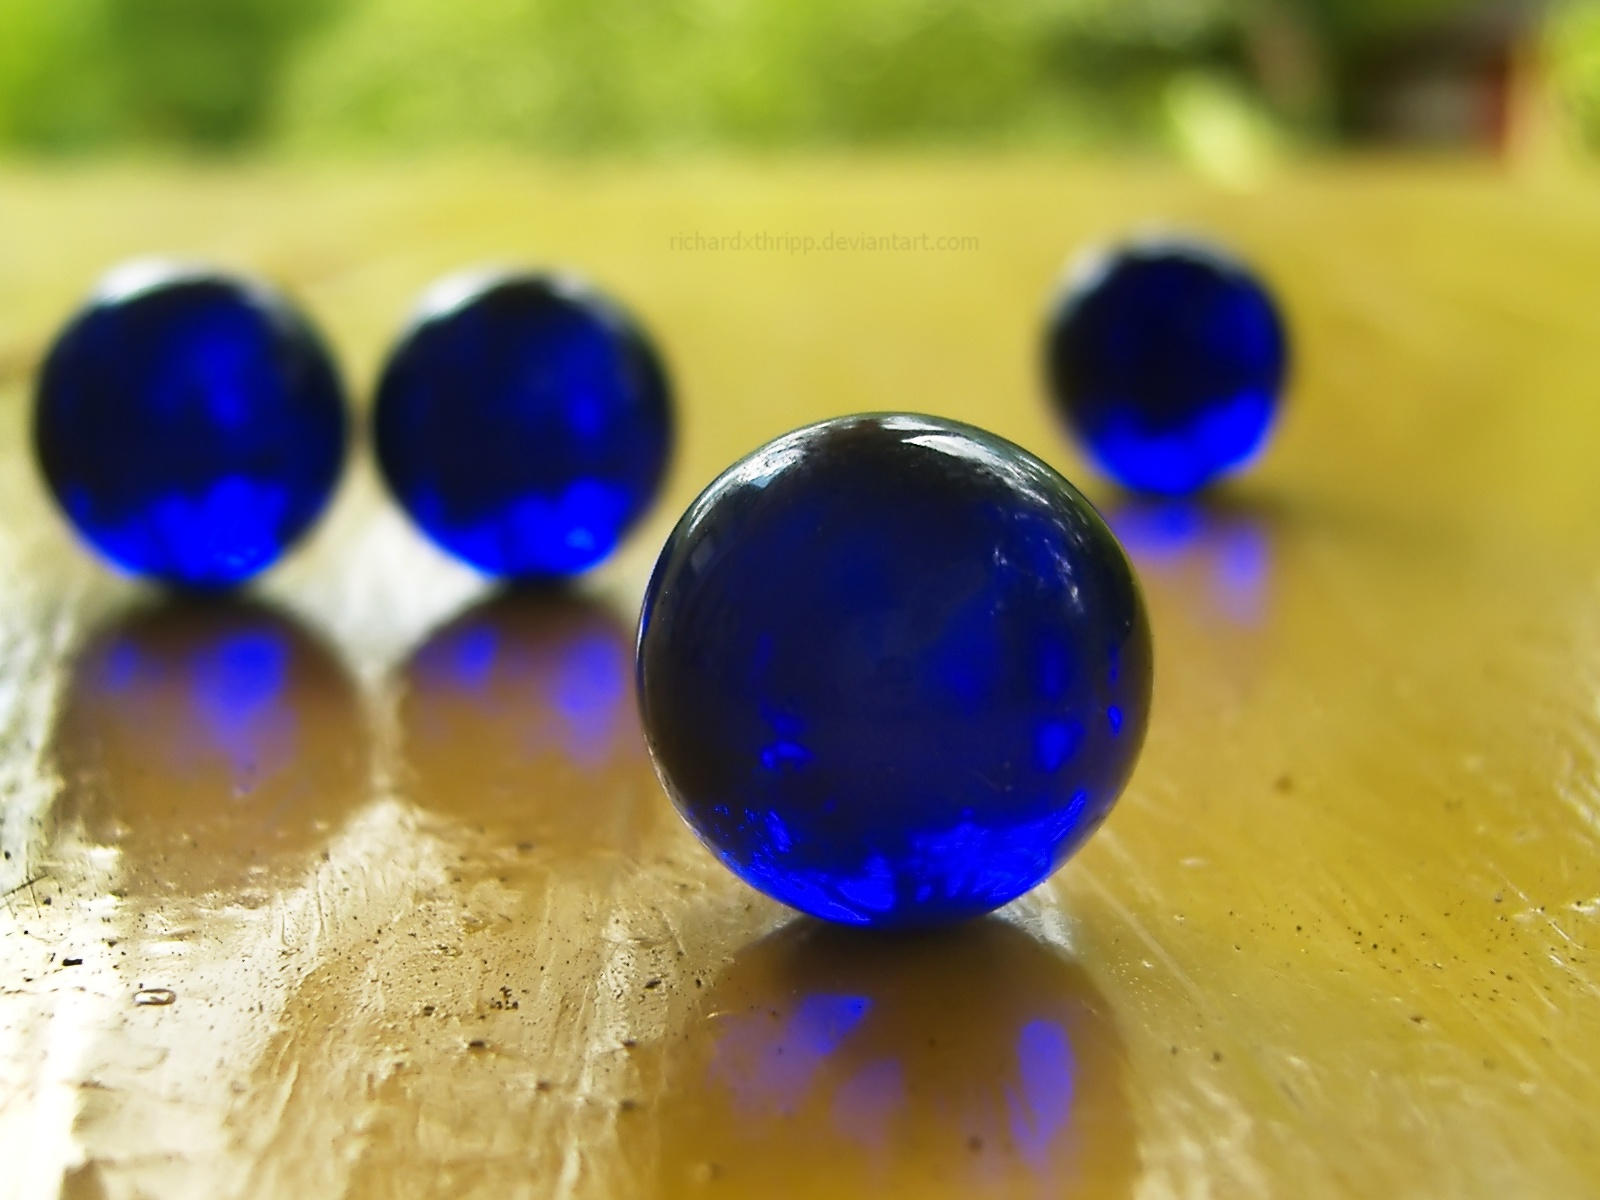 Must see Wallpaper Marble Ball - blue_marbles_4__4_blue_marbles_by_richardxthripp  Trends_651291.jpg